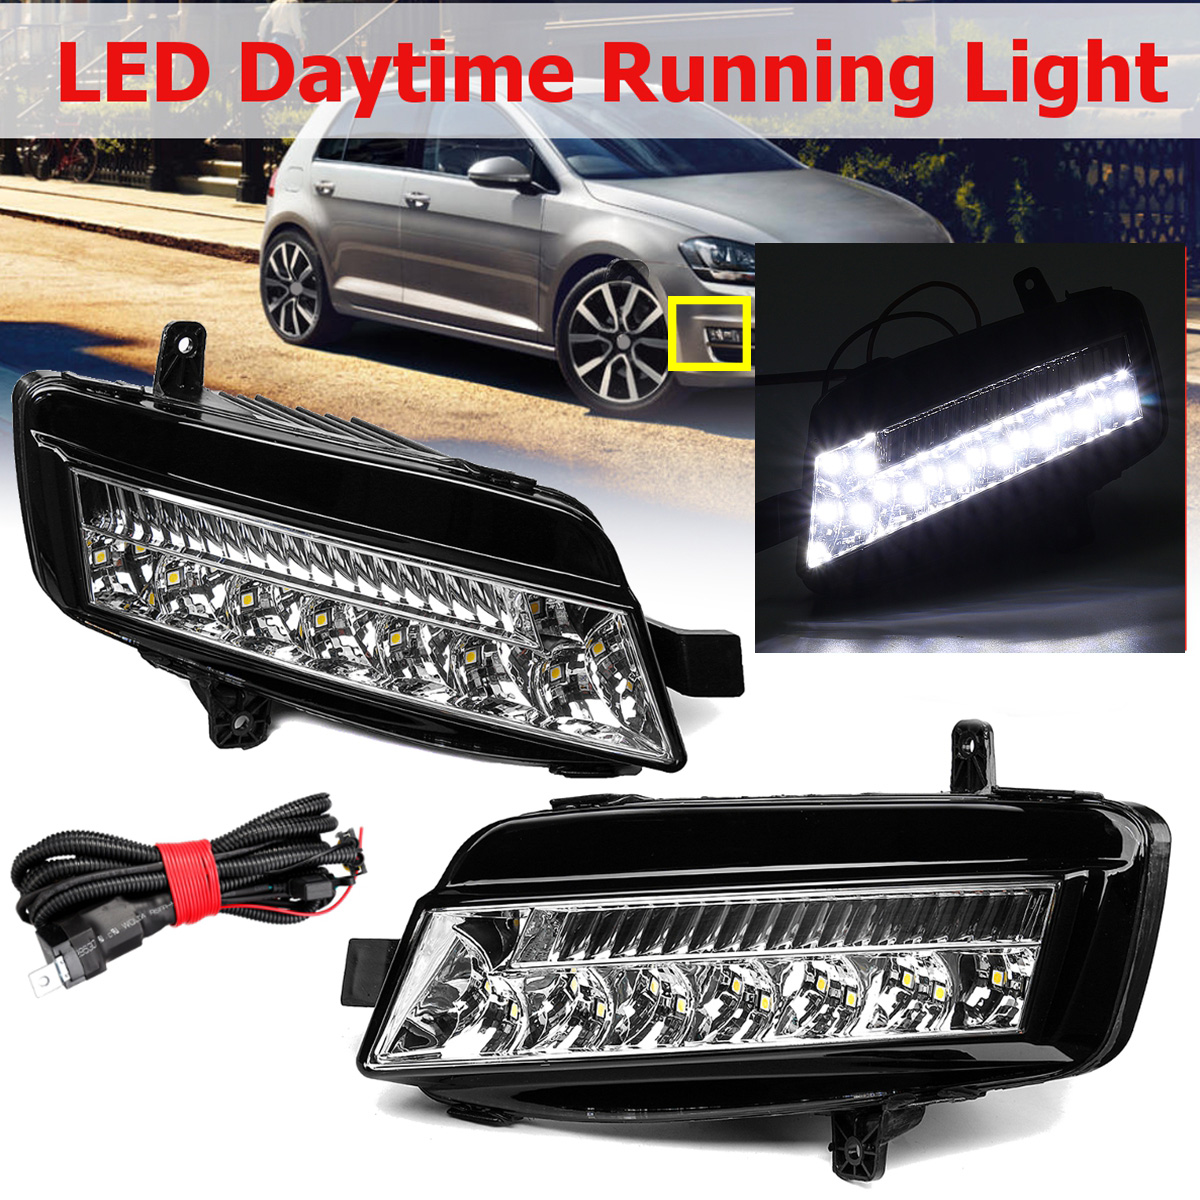 For VW Golf 7 MK7 2014 2015 2016 2017 1 Pair LED DRL Daytime Running Lights Fog Light Fog Lamp Car-styling Headlights Head LampFor VW Golf 7 MK7 2014 2015 2016 2017 1 Pair LED DRL Daytime Running Lights Fog Light Fog Lamp Car-styling Headlights Head Lamp